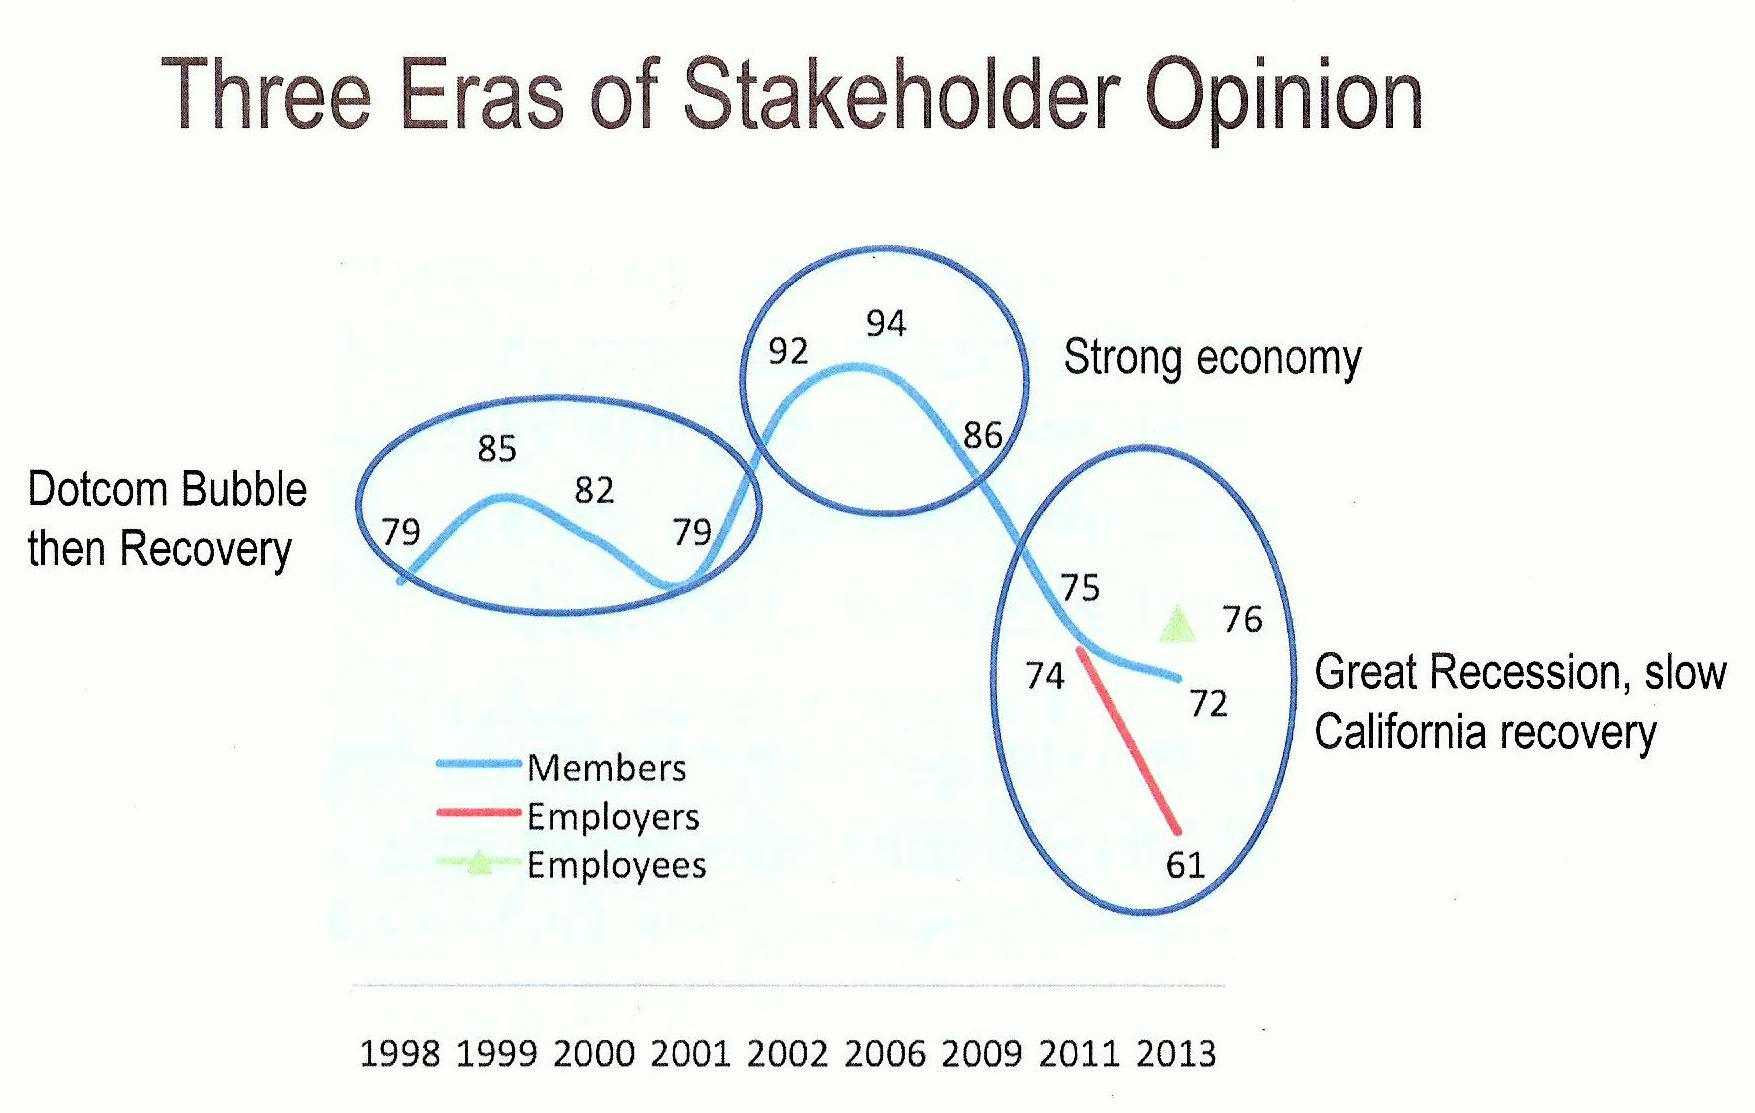 shareholder and stakeholder essay In a corporation, as defined in its first usage in a 1963 internal memorandum at the stanford research institute, a stakeholder is a member of the groups without whose support the organization would cease to exist.